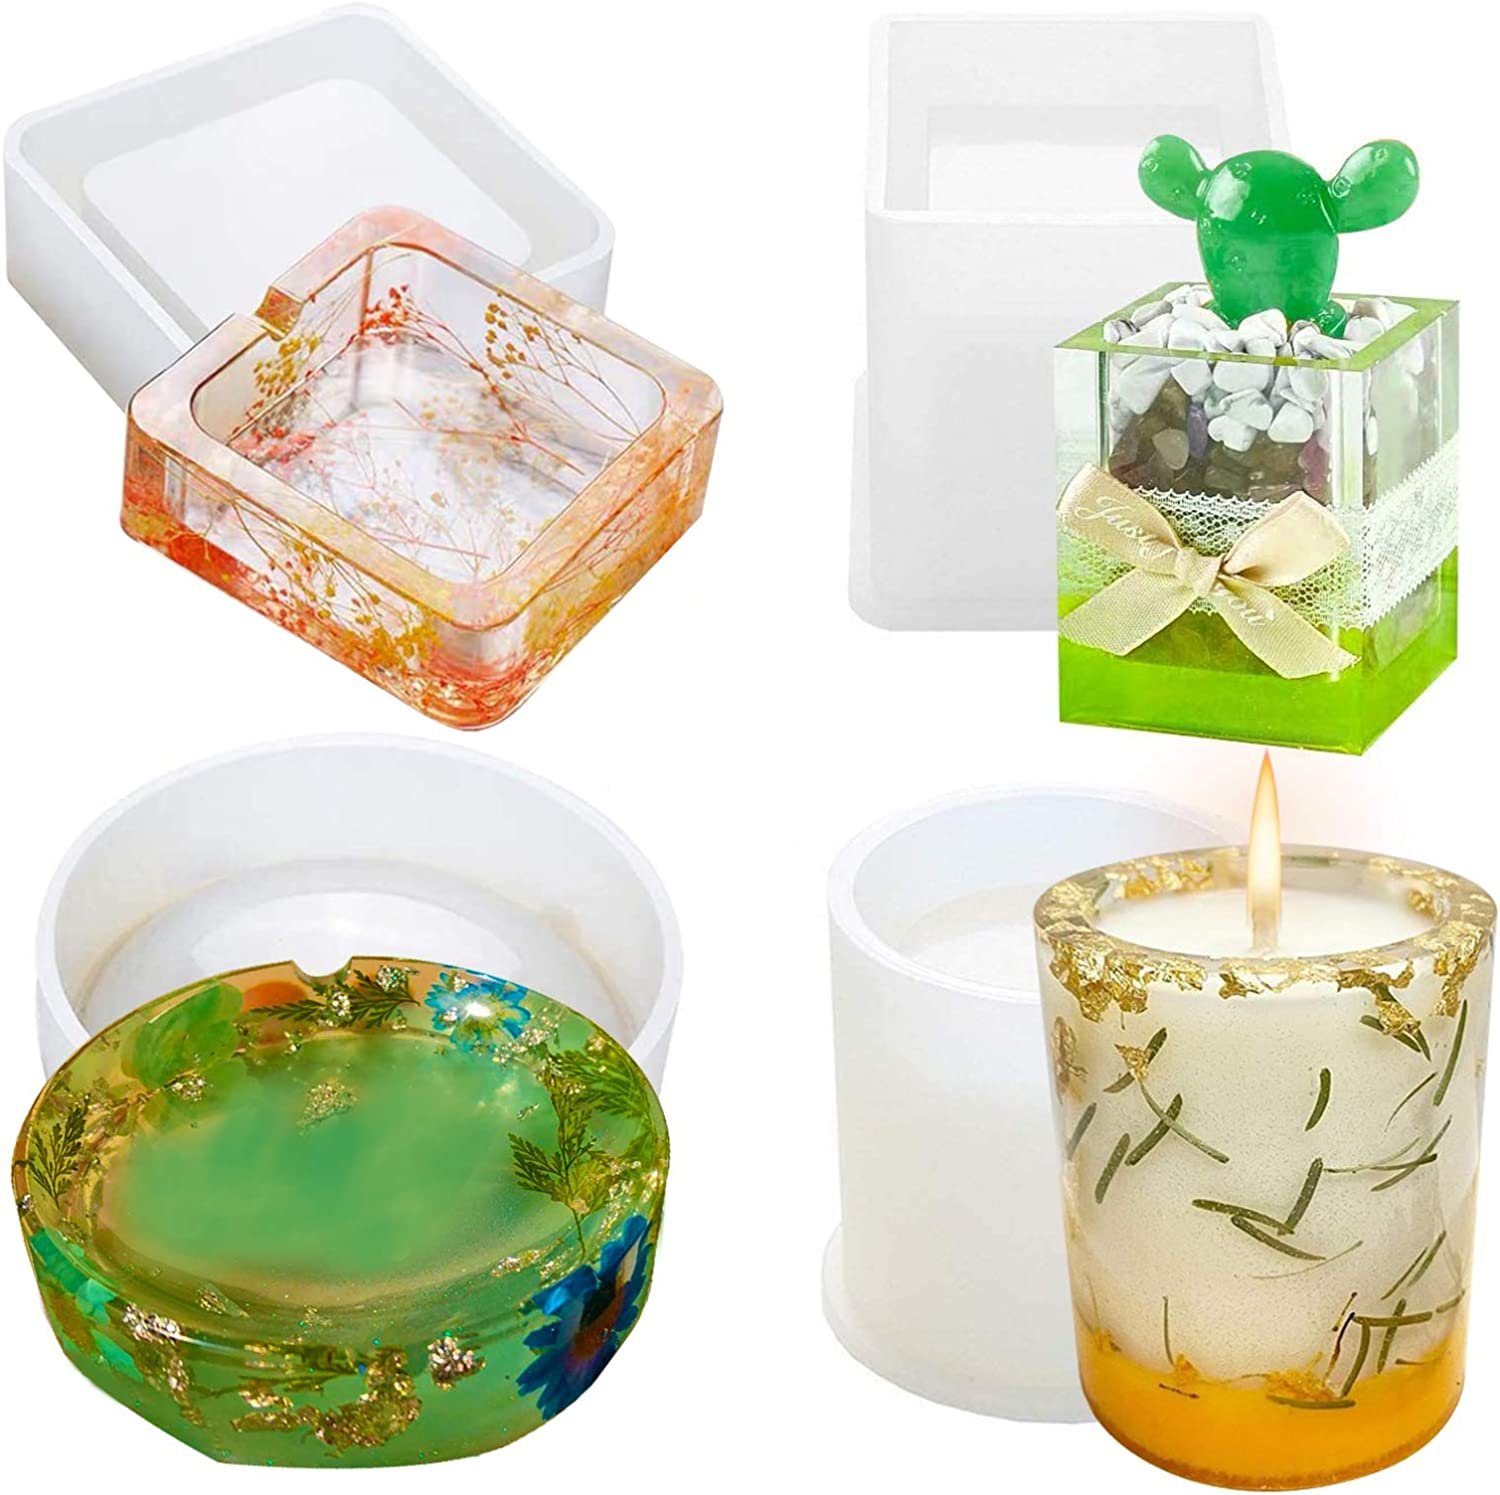 Flower Pot Silicone Resin Mold Dried Flower DIY Craft Soap Candle Cake Mould